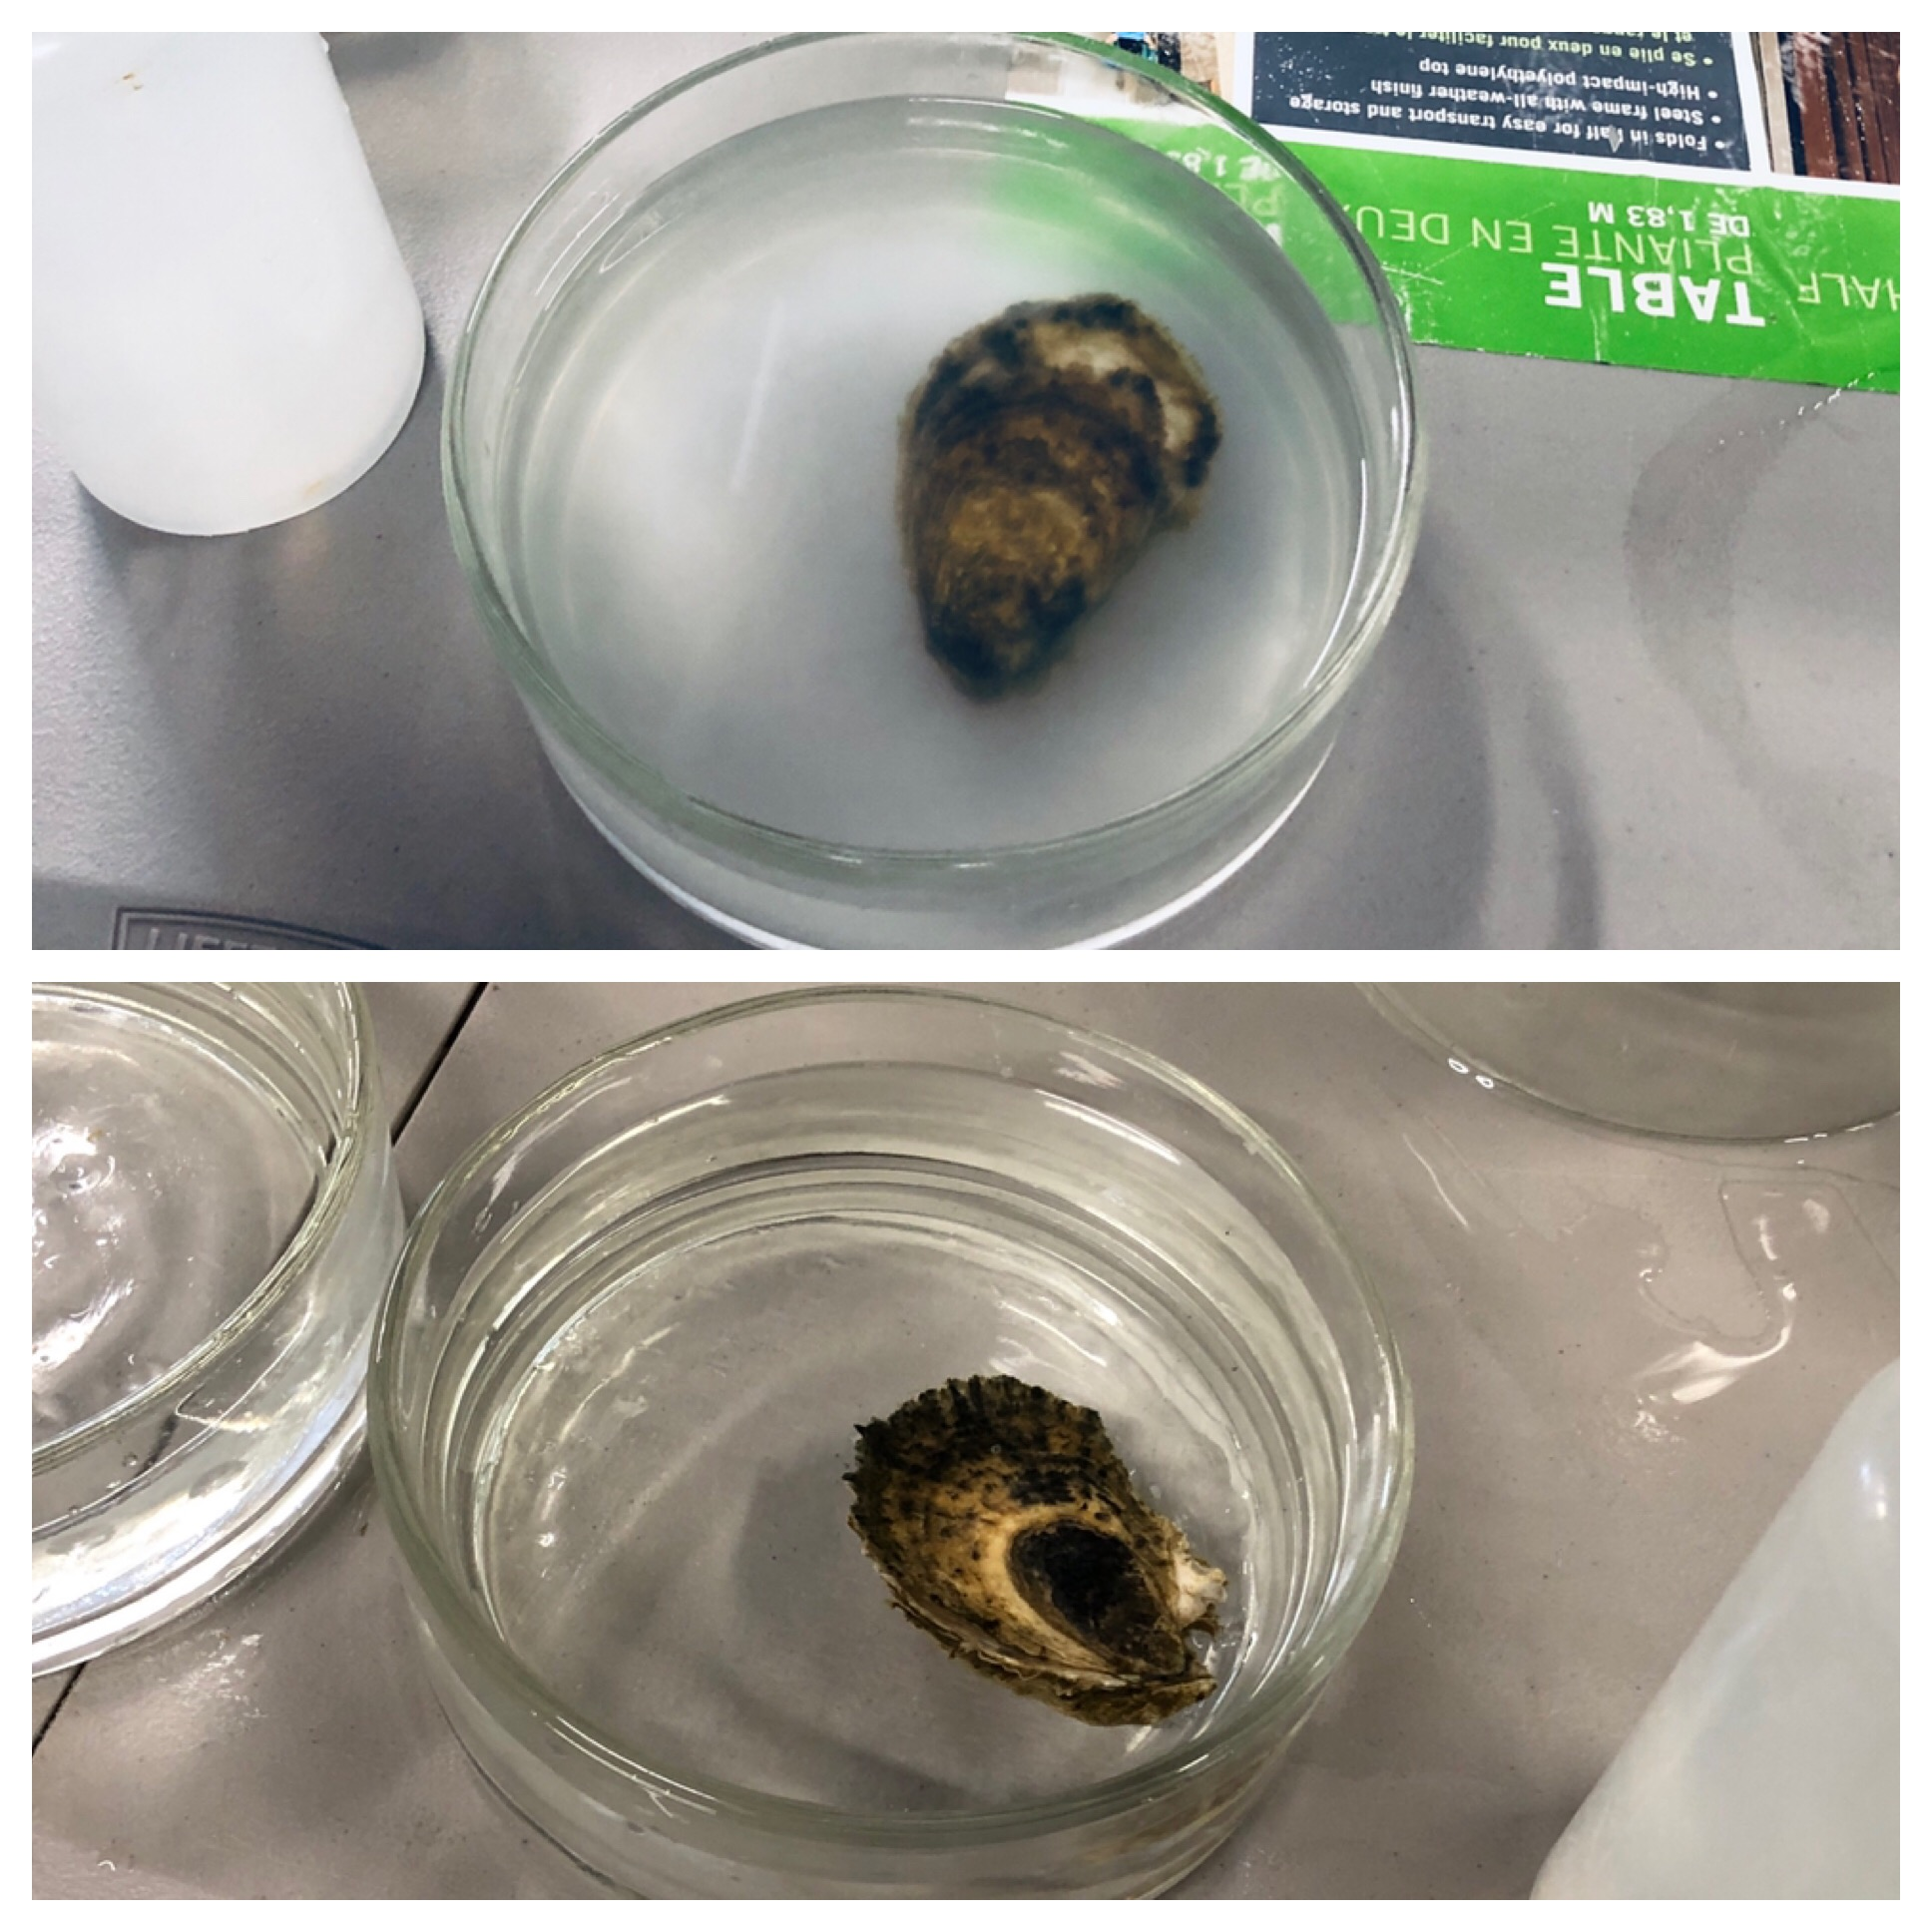 Top image: male oyster has released his sperm. Bottom image: female oyster has released her eggs. The gametes will be combined in specific proportions, then later stocked into the larvae-rearing tanks.